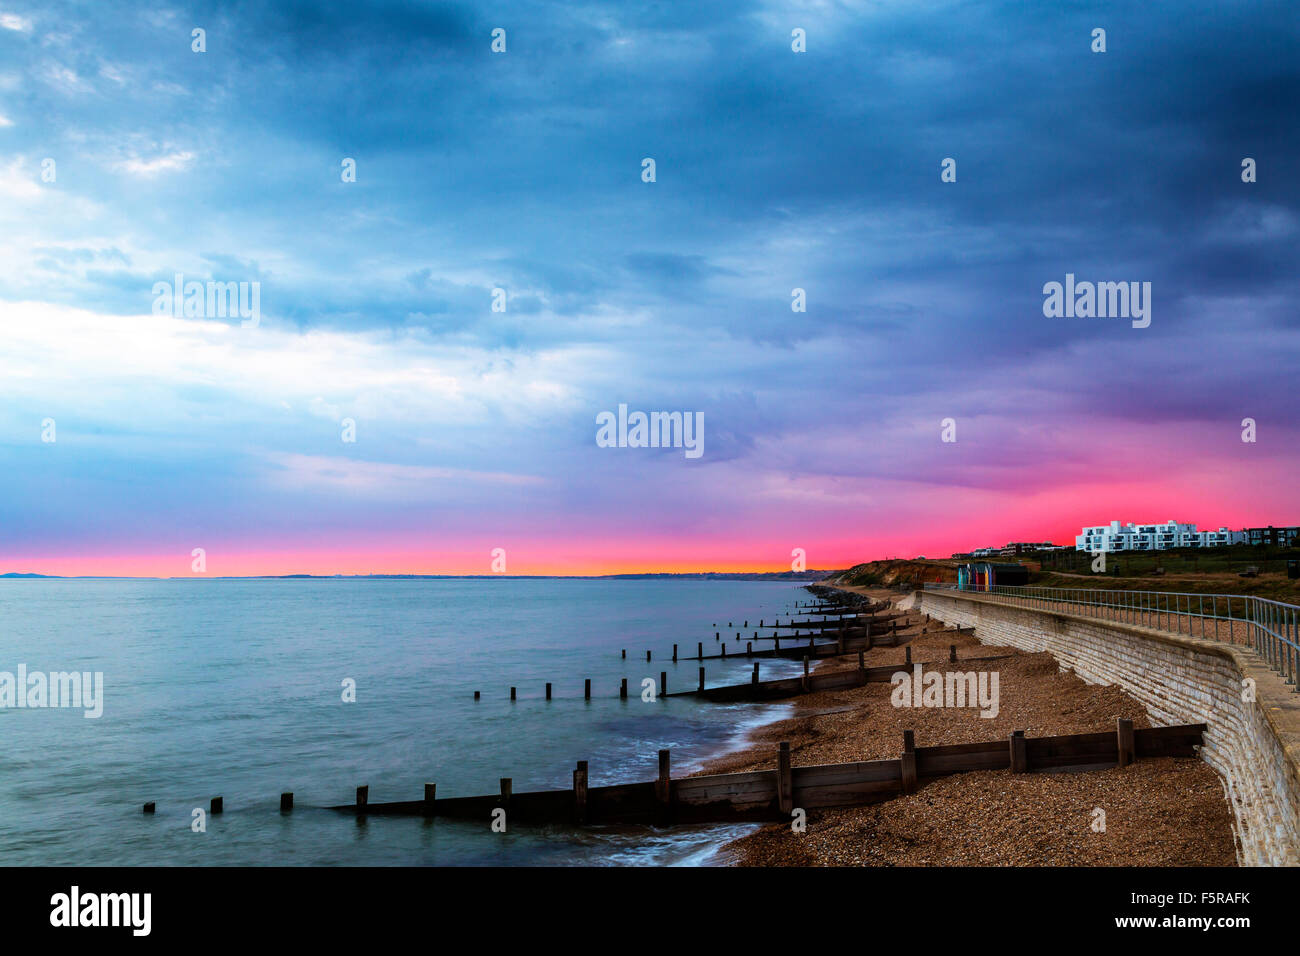 Sunset from Milford on Sea, Hampshire, England, UK - Stock Image